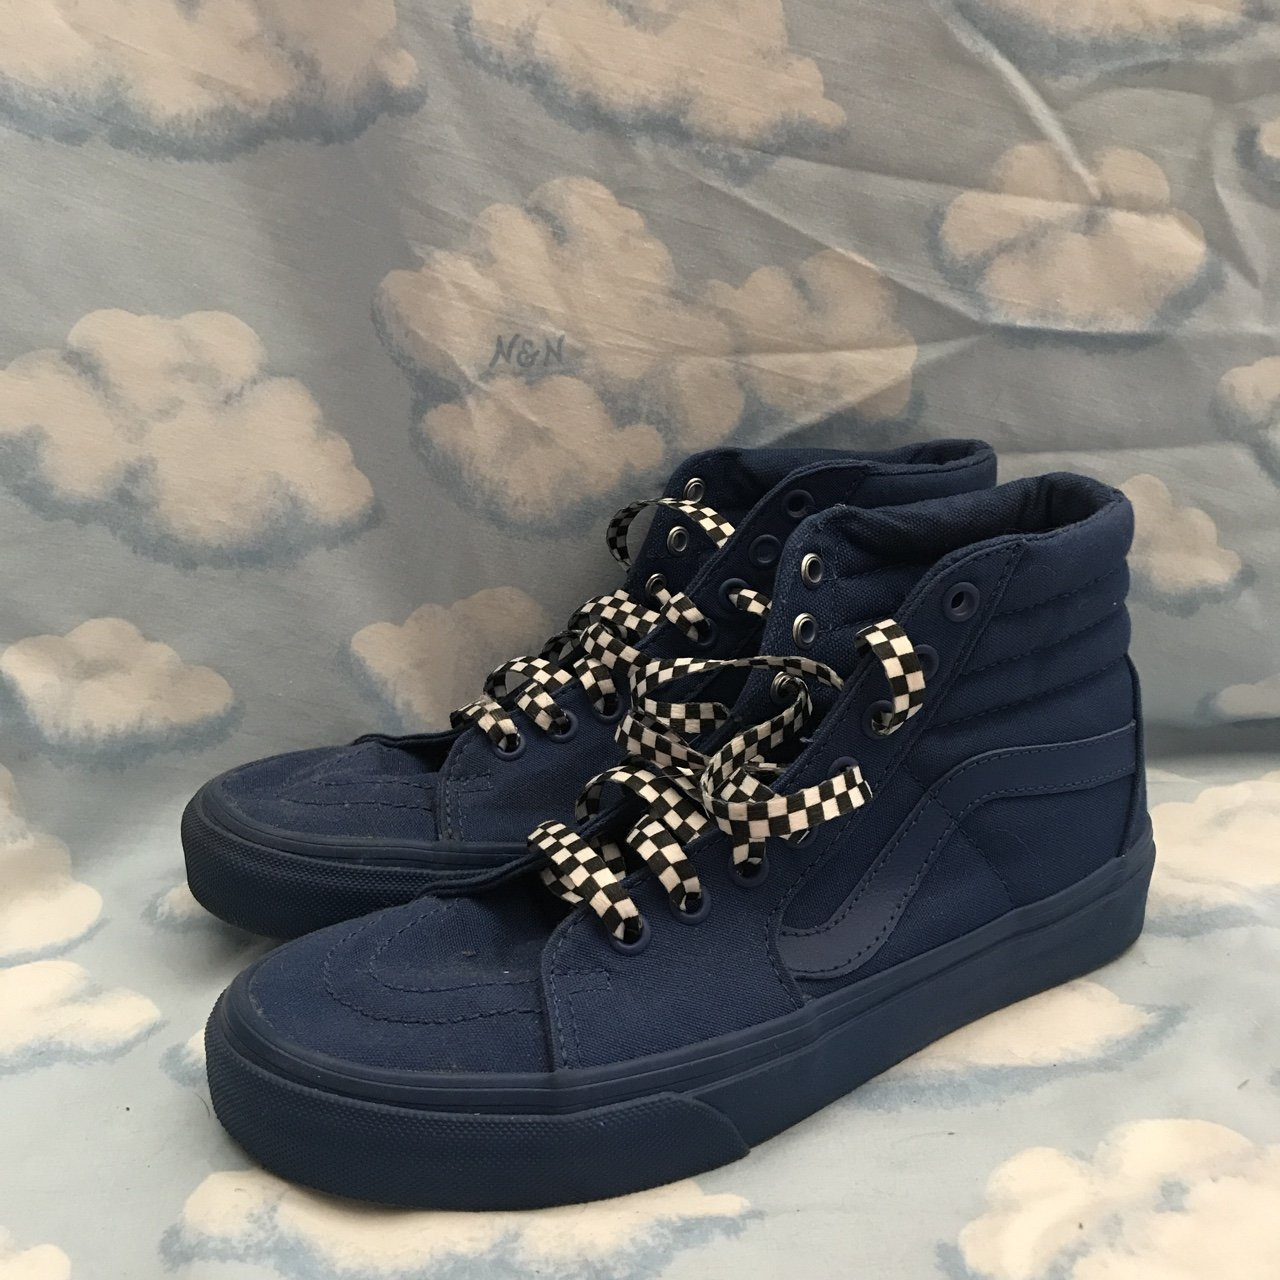 aaaf4225f62799 New dark blue vans with checkered laces size women s - Depop